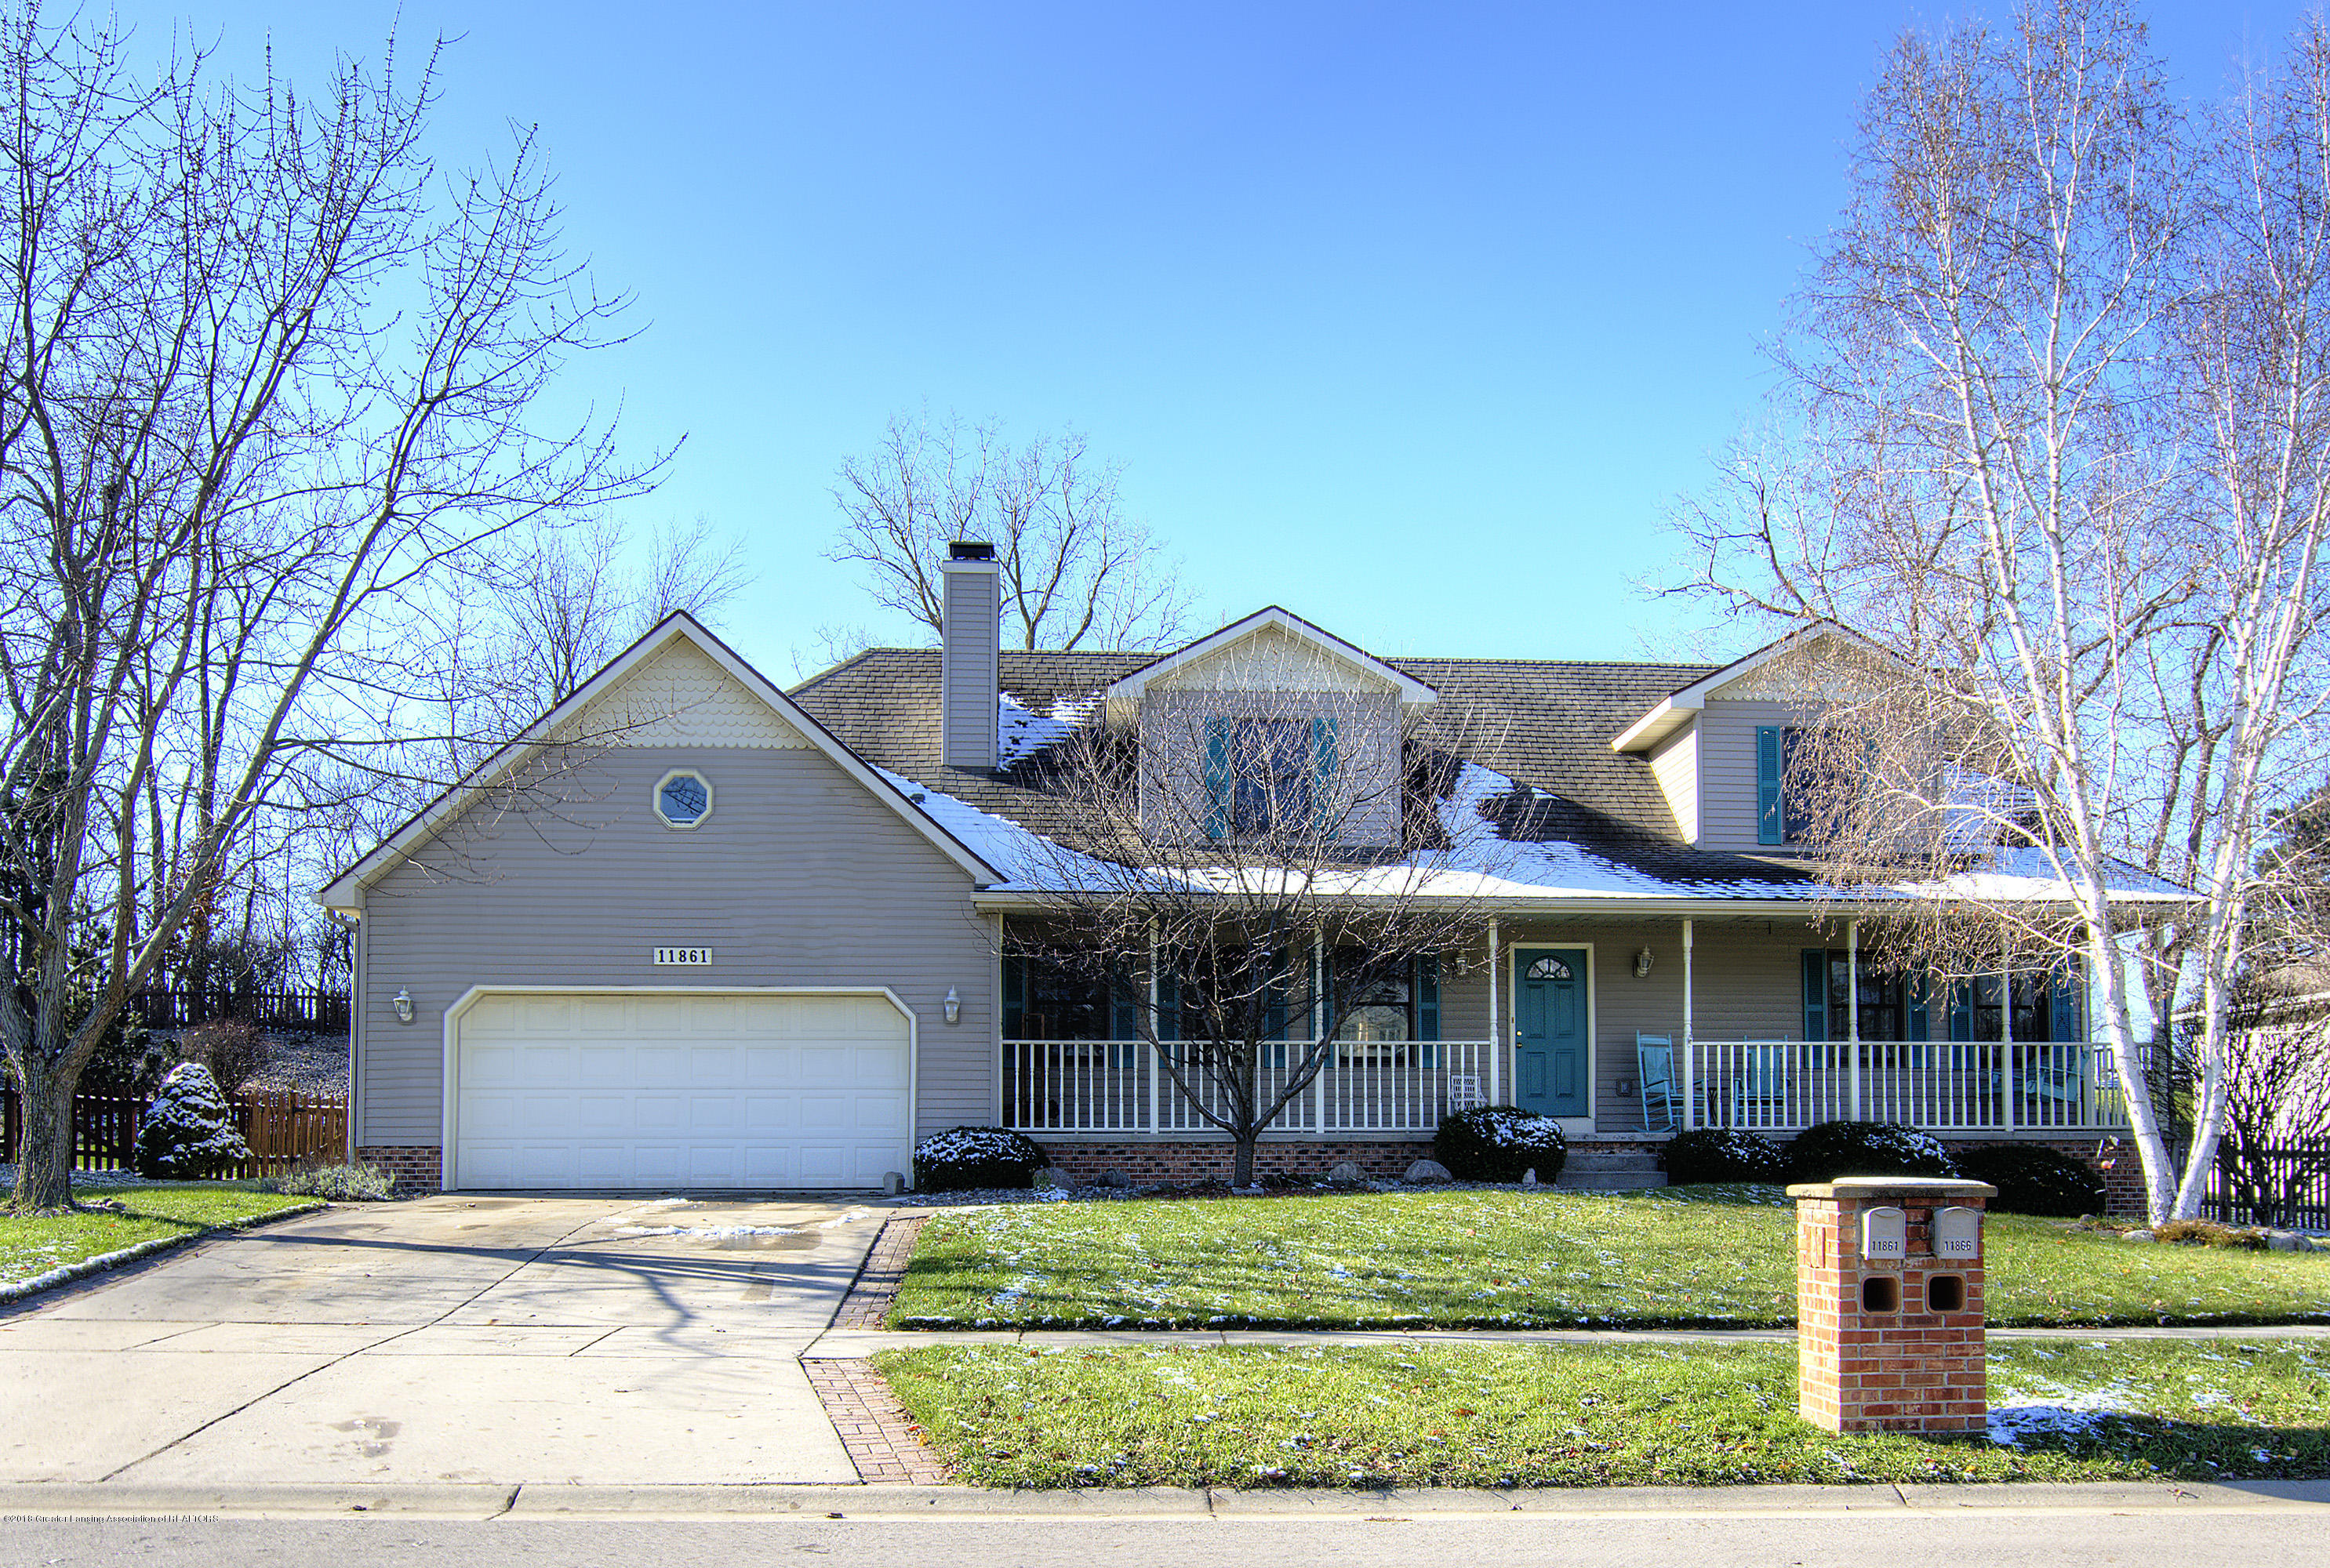 11861 Shady Pines Dr - front2 - 1